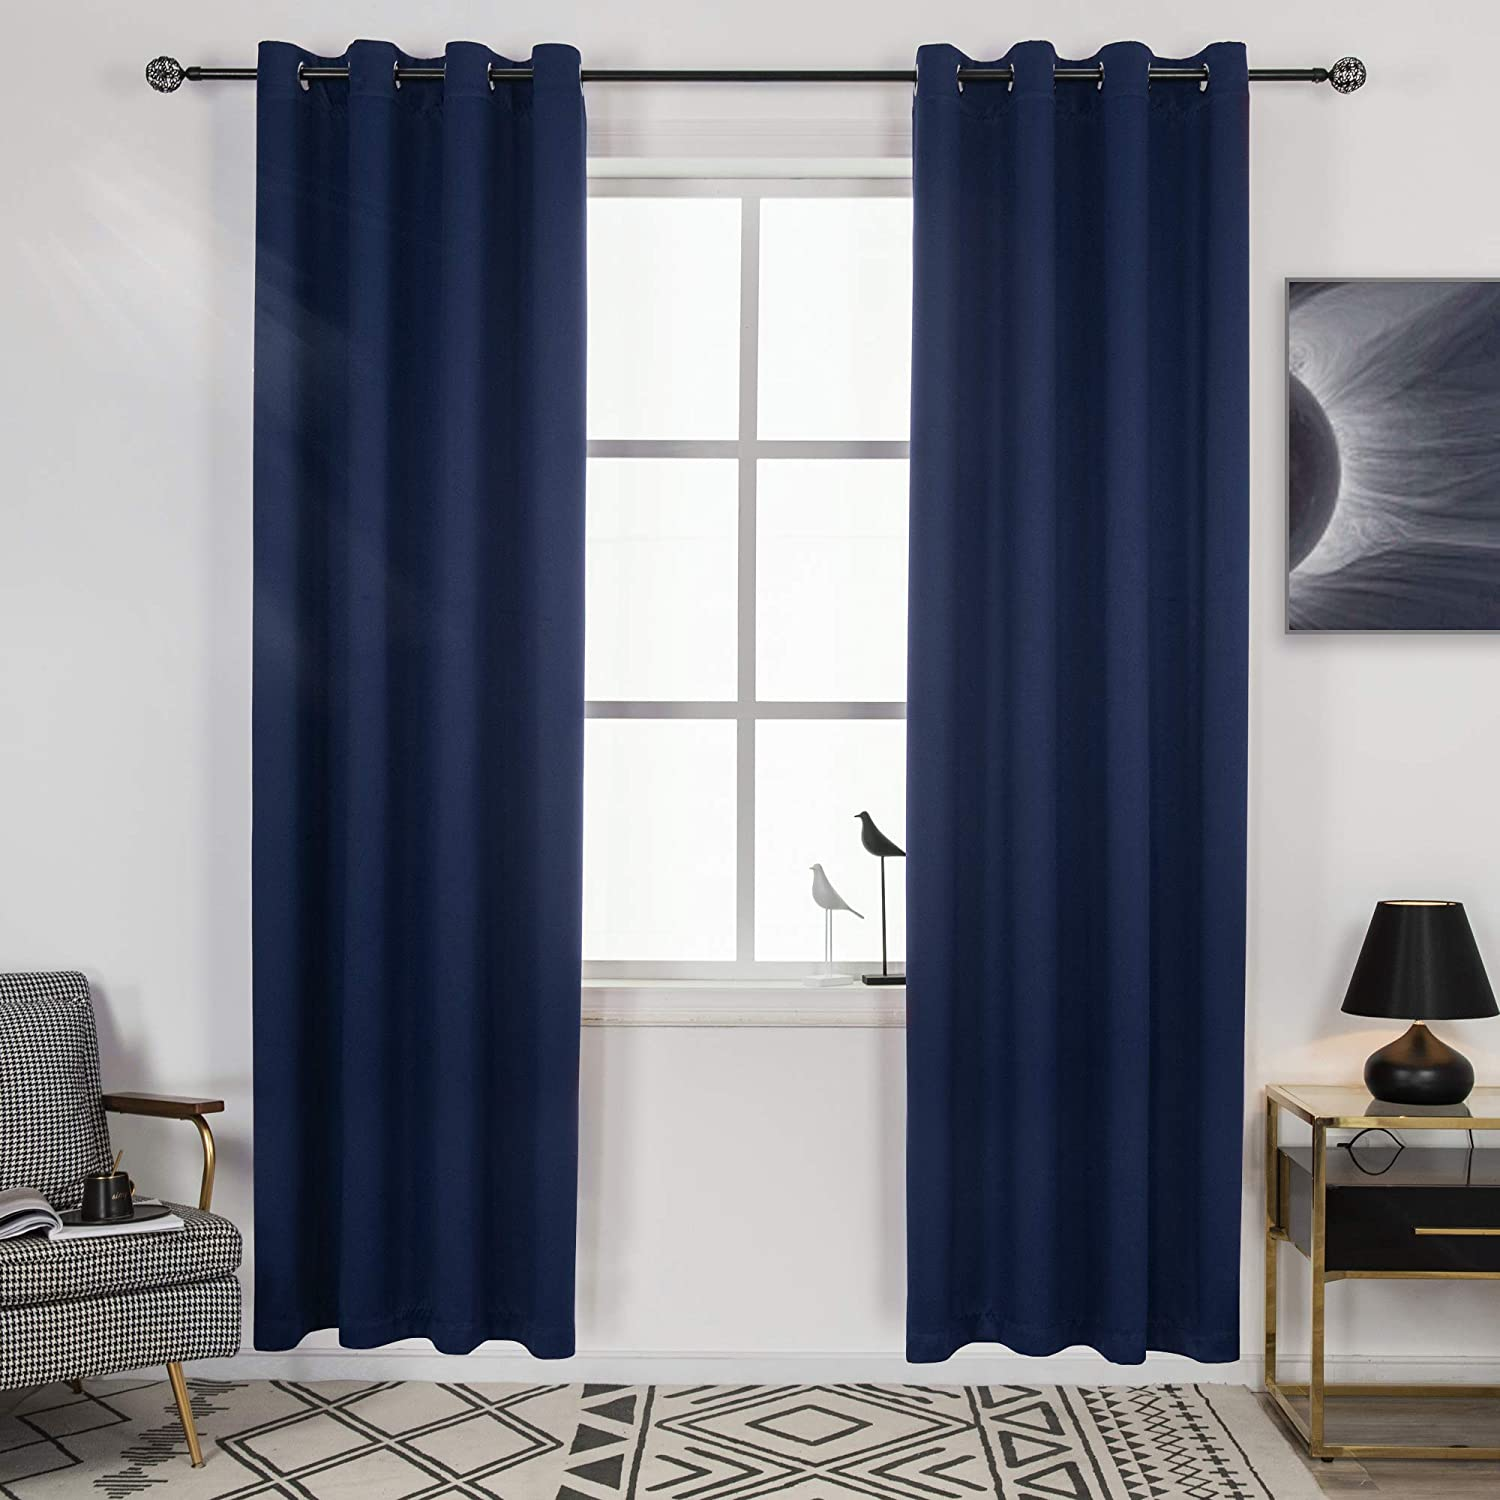 DECOVSUN Popular shop is the lowest price challenge Max 74% OFF 99% Blackout Navy Blue Room Curtains Bedroom for Living